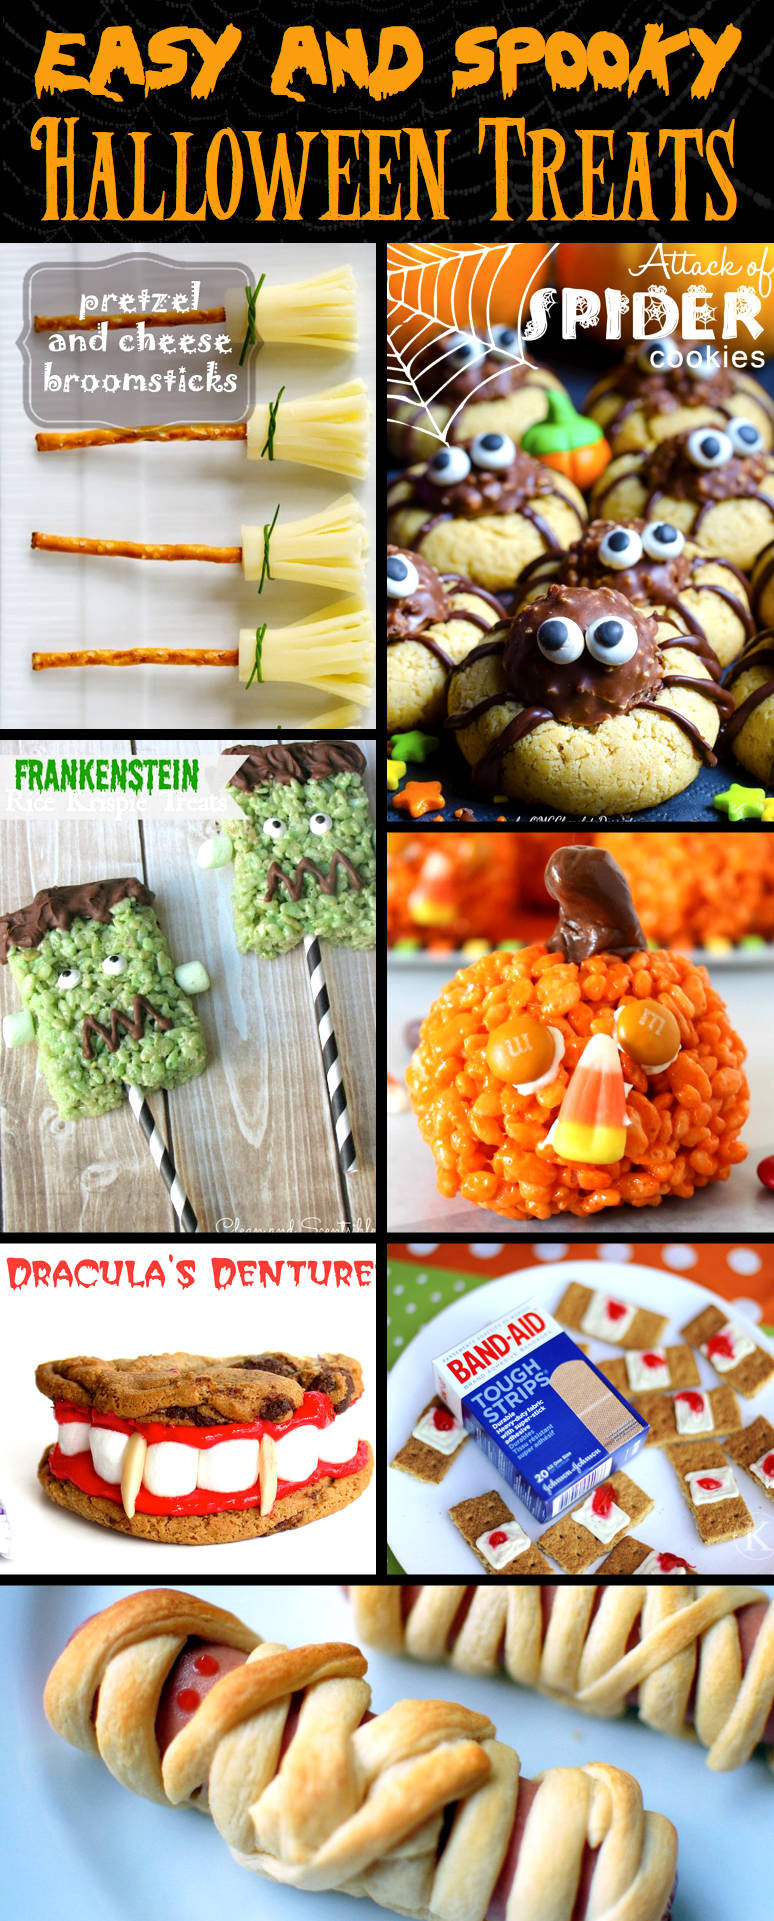 30+ Easy and Spooky DIY Halloween Treats